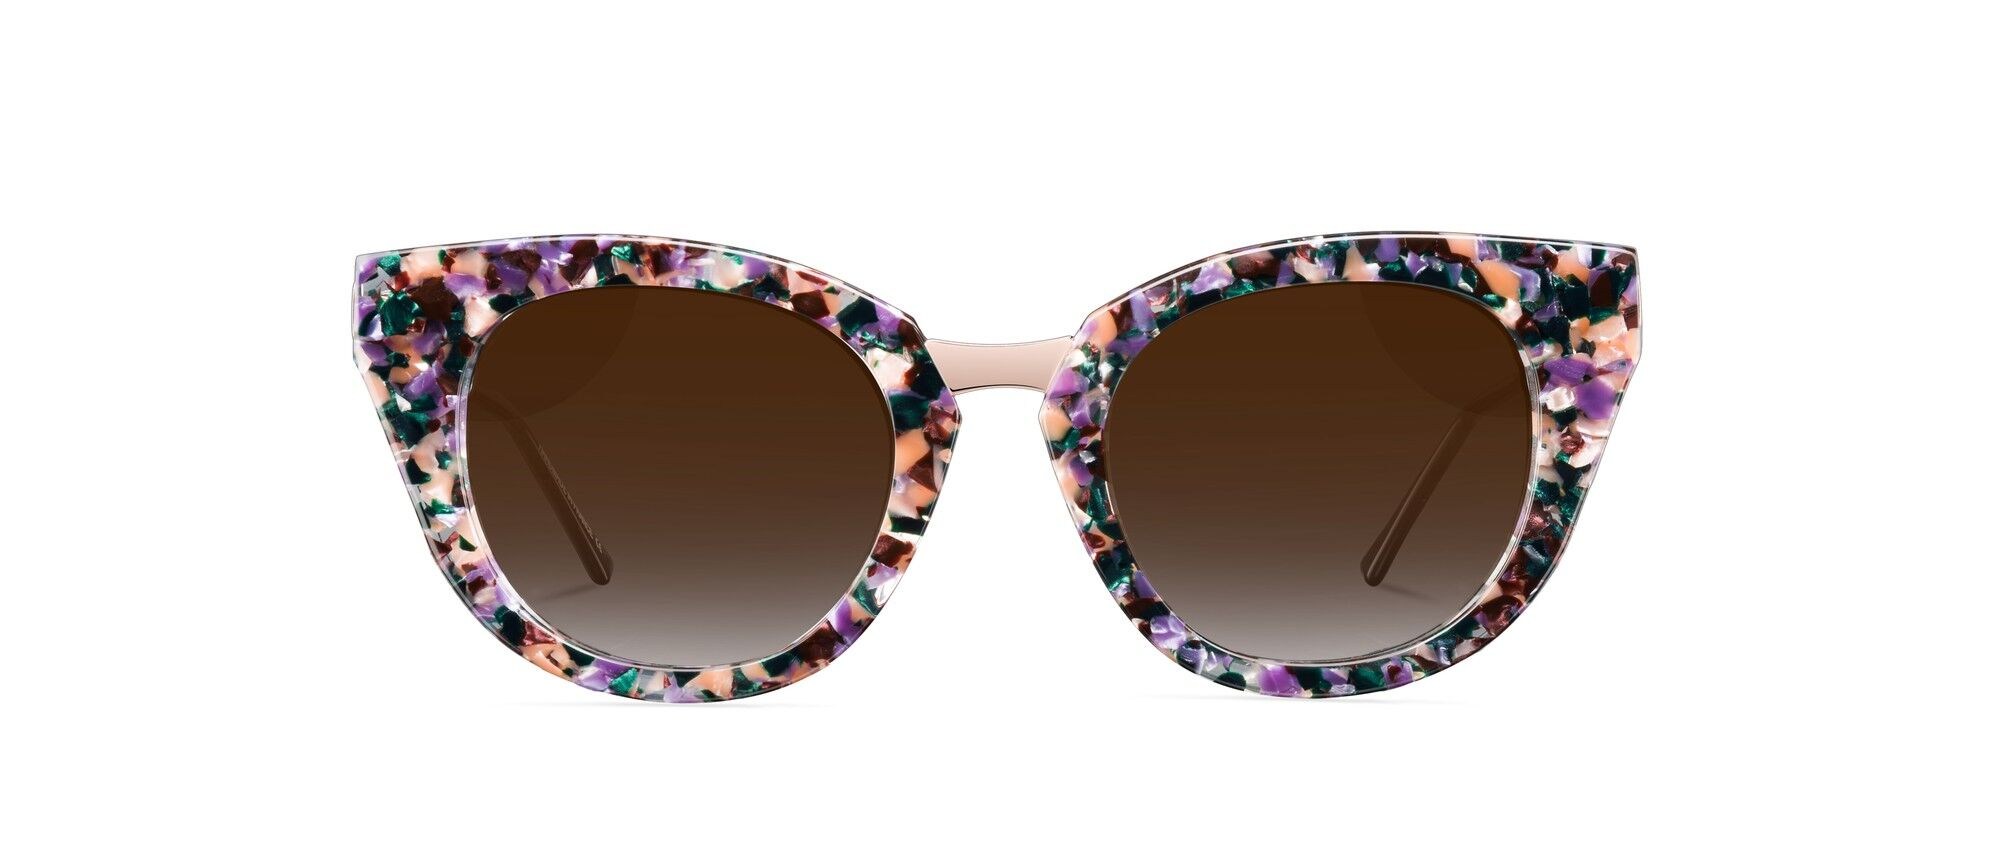 thierry-lasry-snobby-FS-1